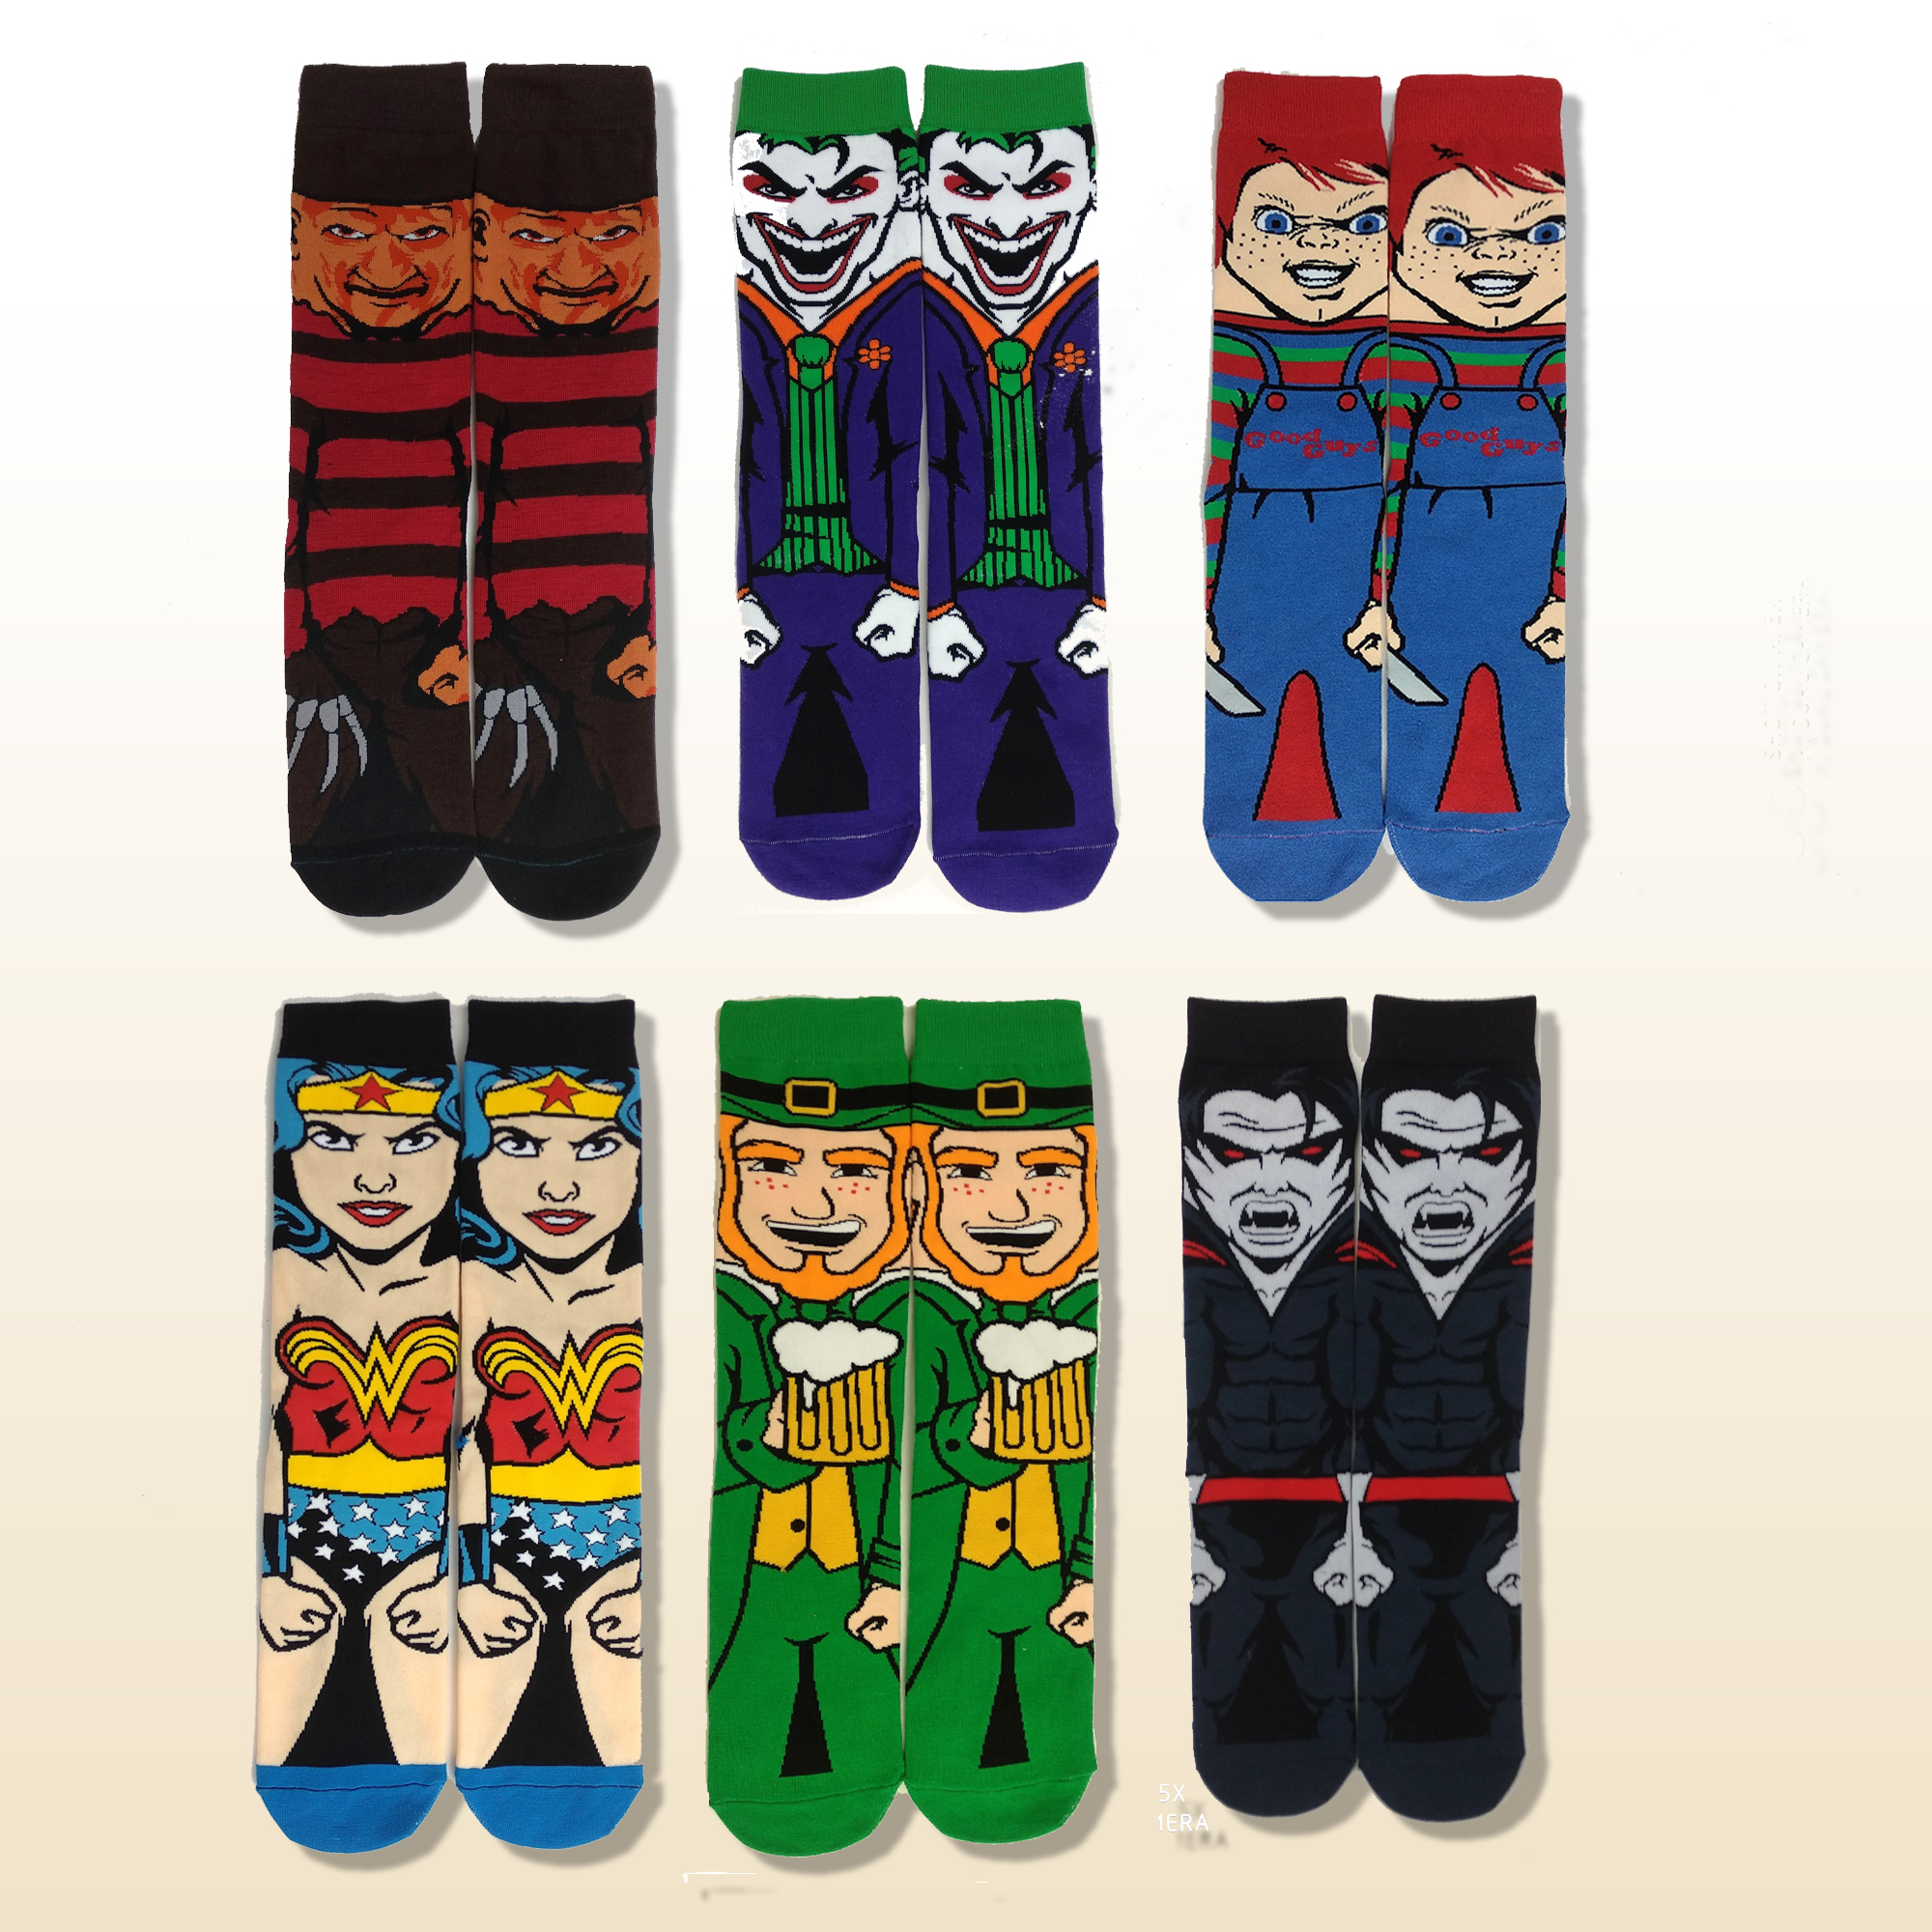 Cartoon Anime Horrible Movie Skateboard Socks Cotton Crazy Stocking Sock Personality Popular Summer Dress Socks носк